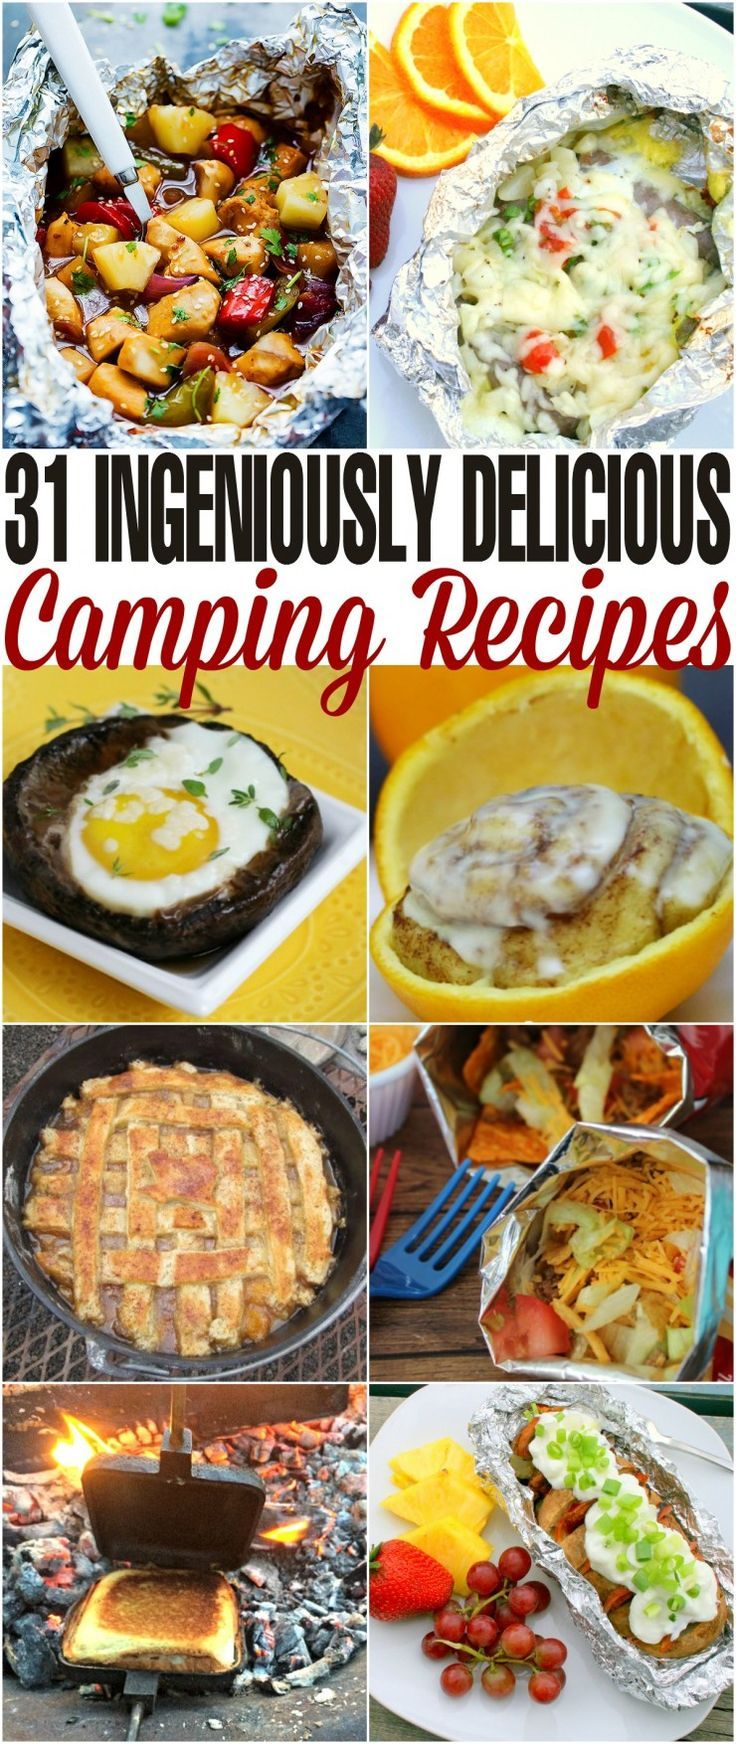 31 camping recipes from breakfast to dessert that are so ingenious they are sure to stun you with their ease and flavour!